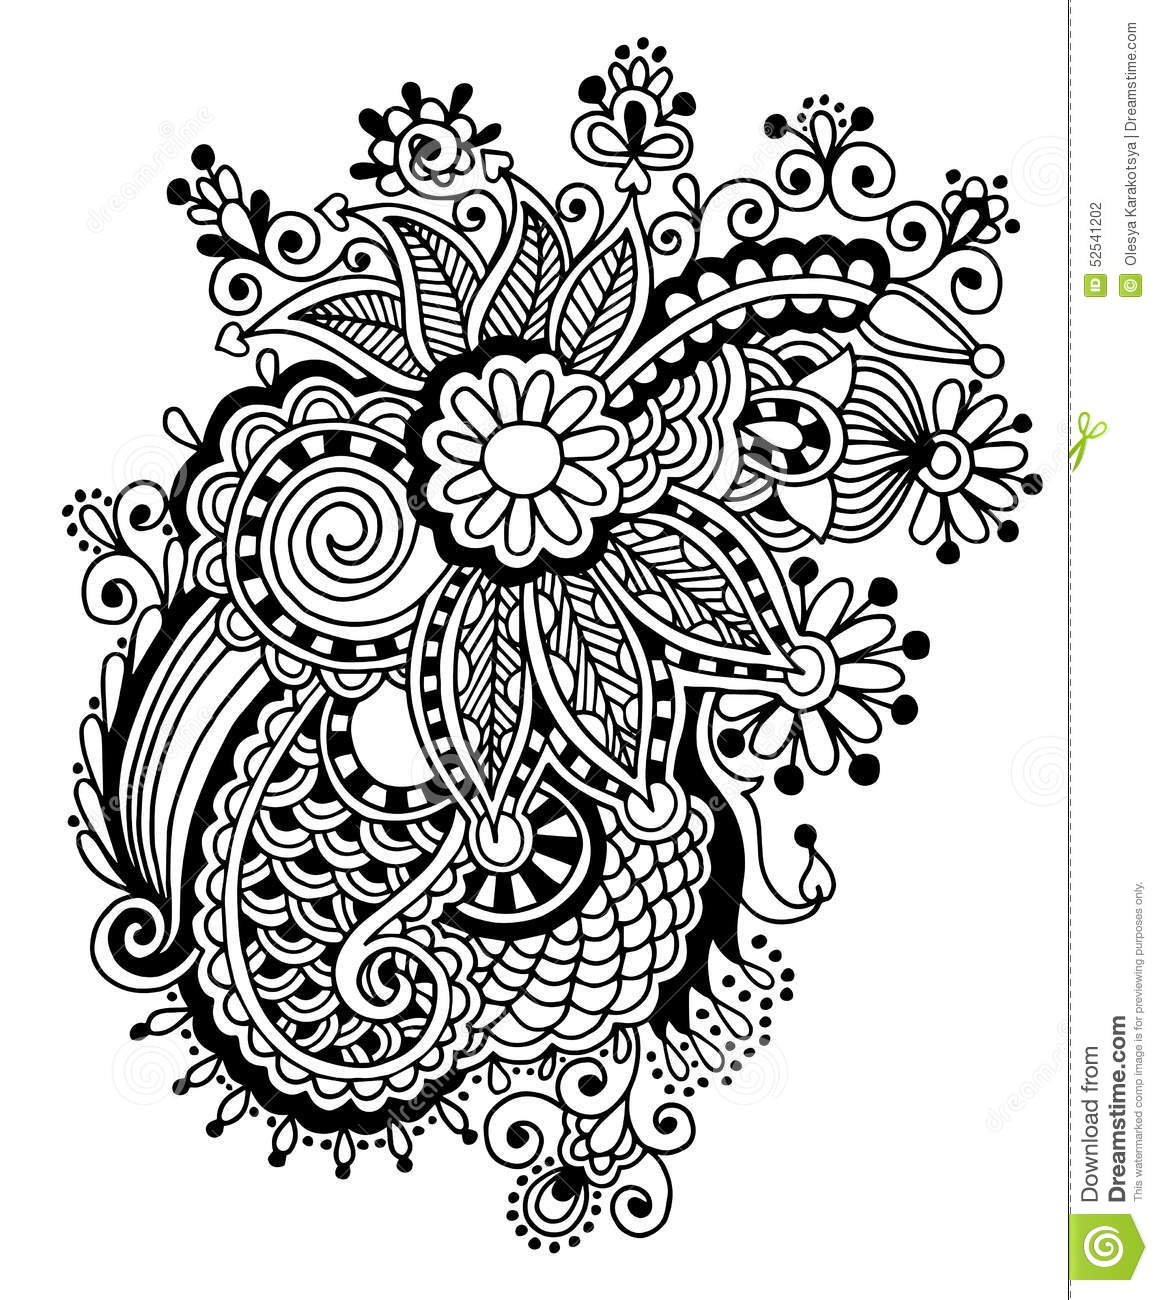 Line Design Art With Mr E : Hand draw black and white line art ornate flower stock